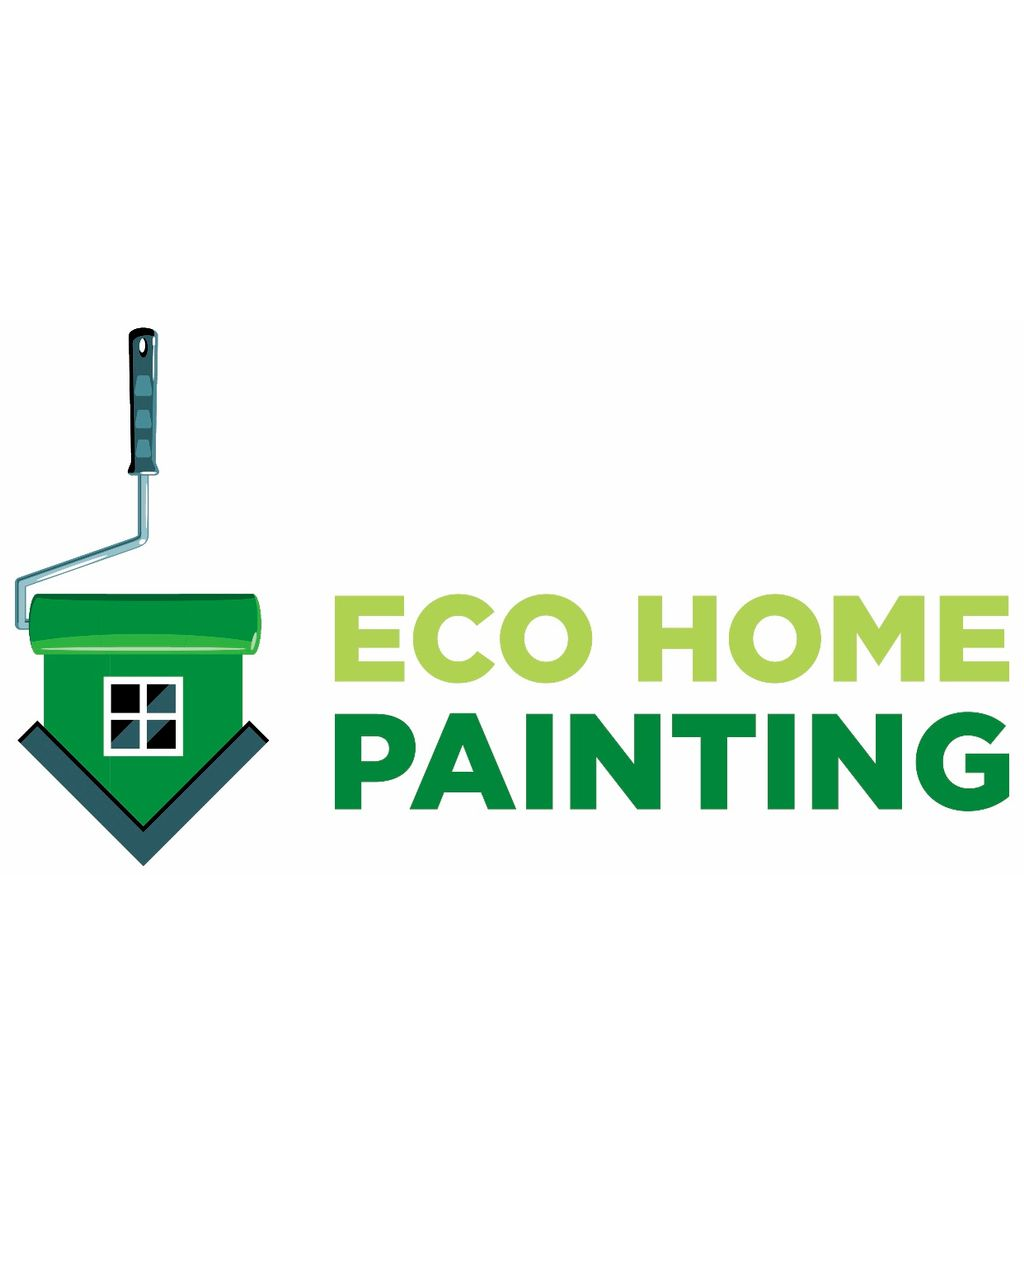 Eco Home Painting